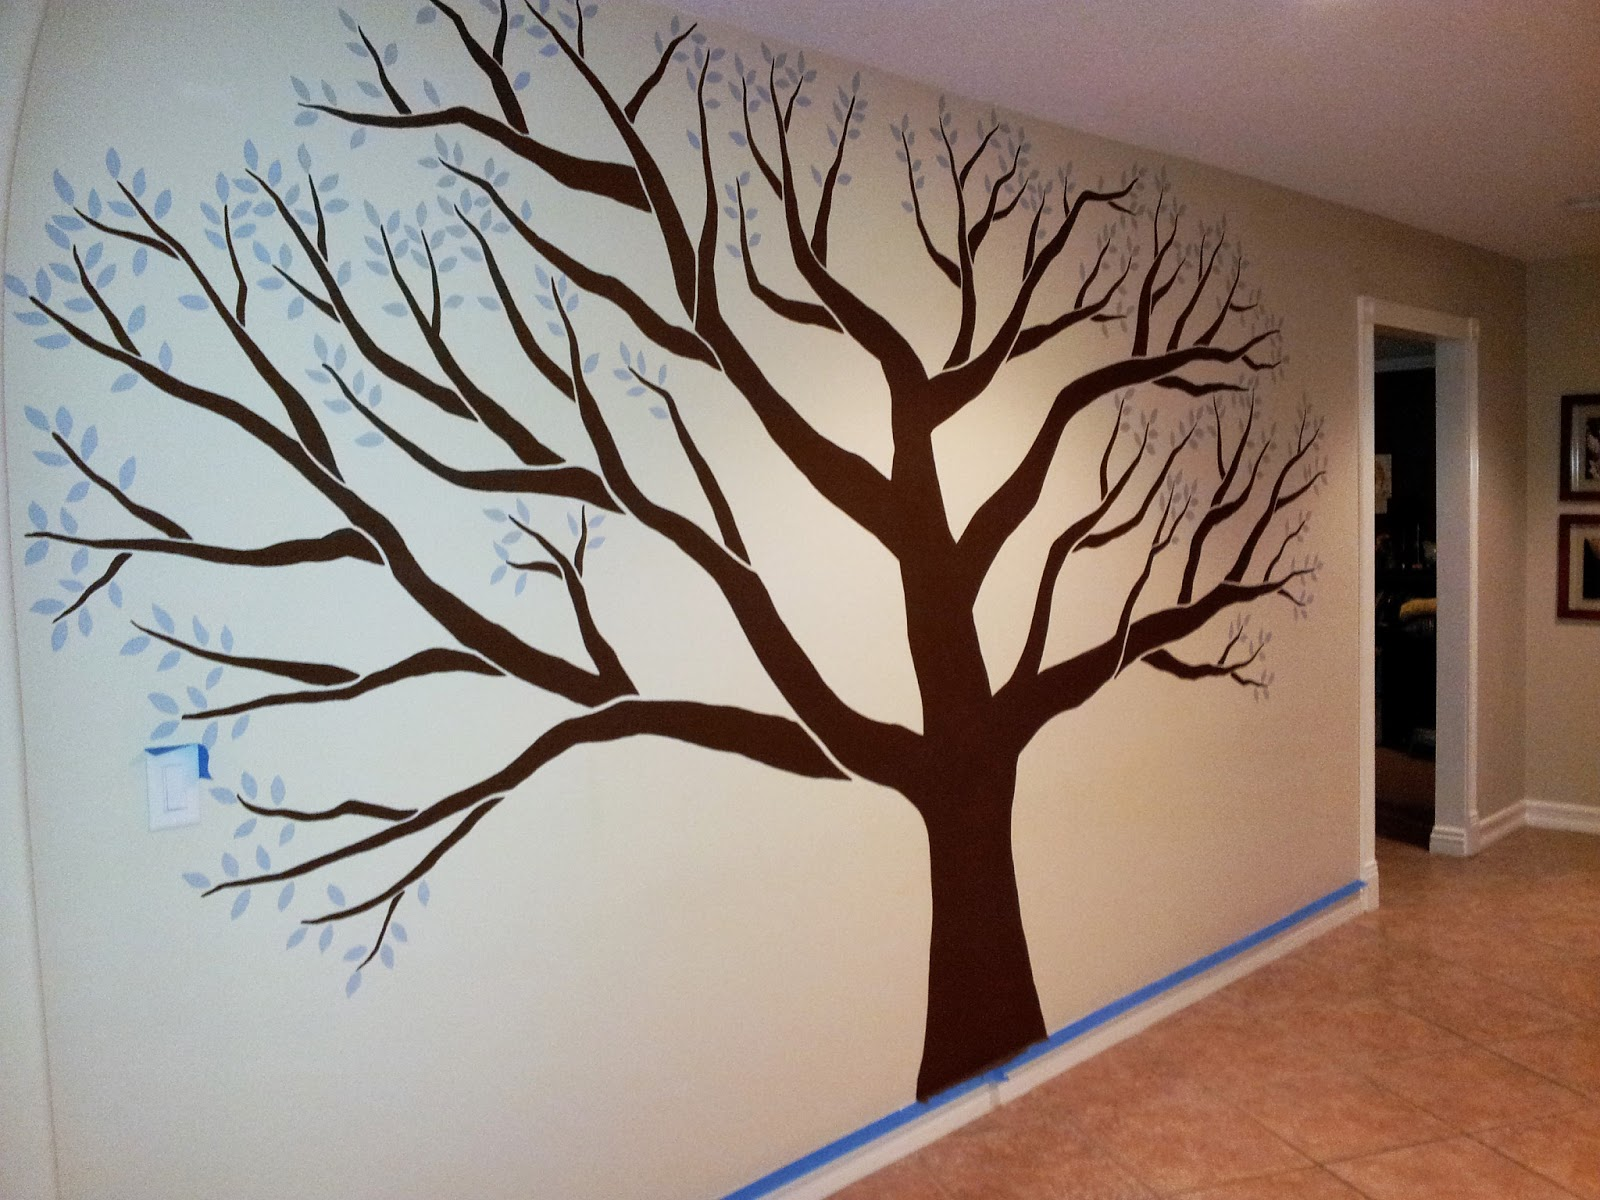 Family Tree Murals For Walls 28+ [ family tree murals for walls ] | gallery for gt family tree